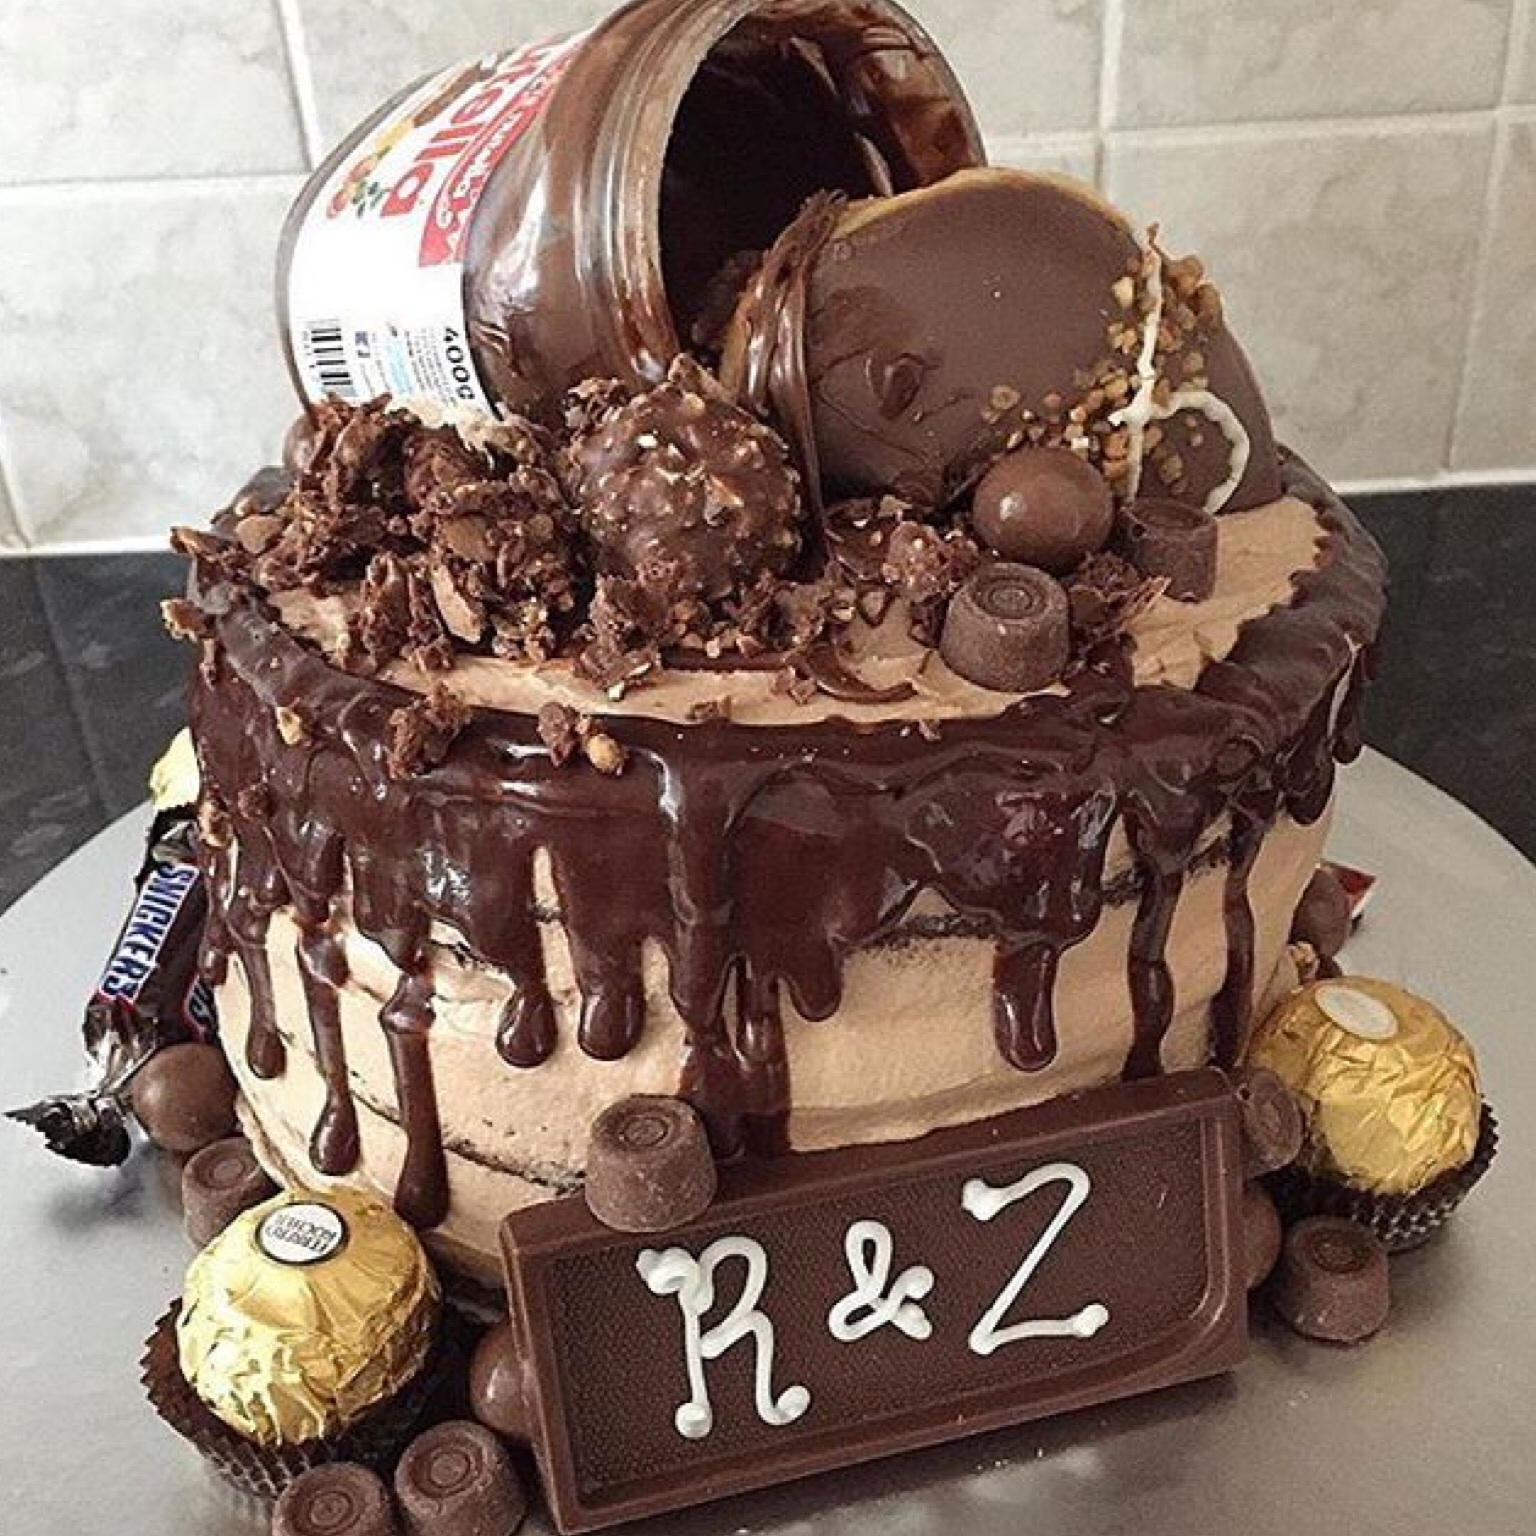 cake, chocolate, delicious, food, foodie